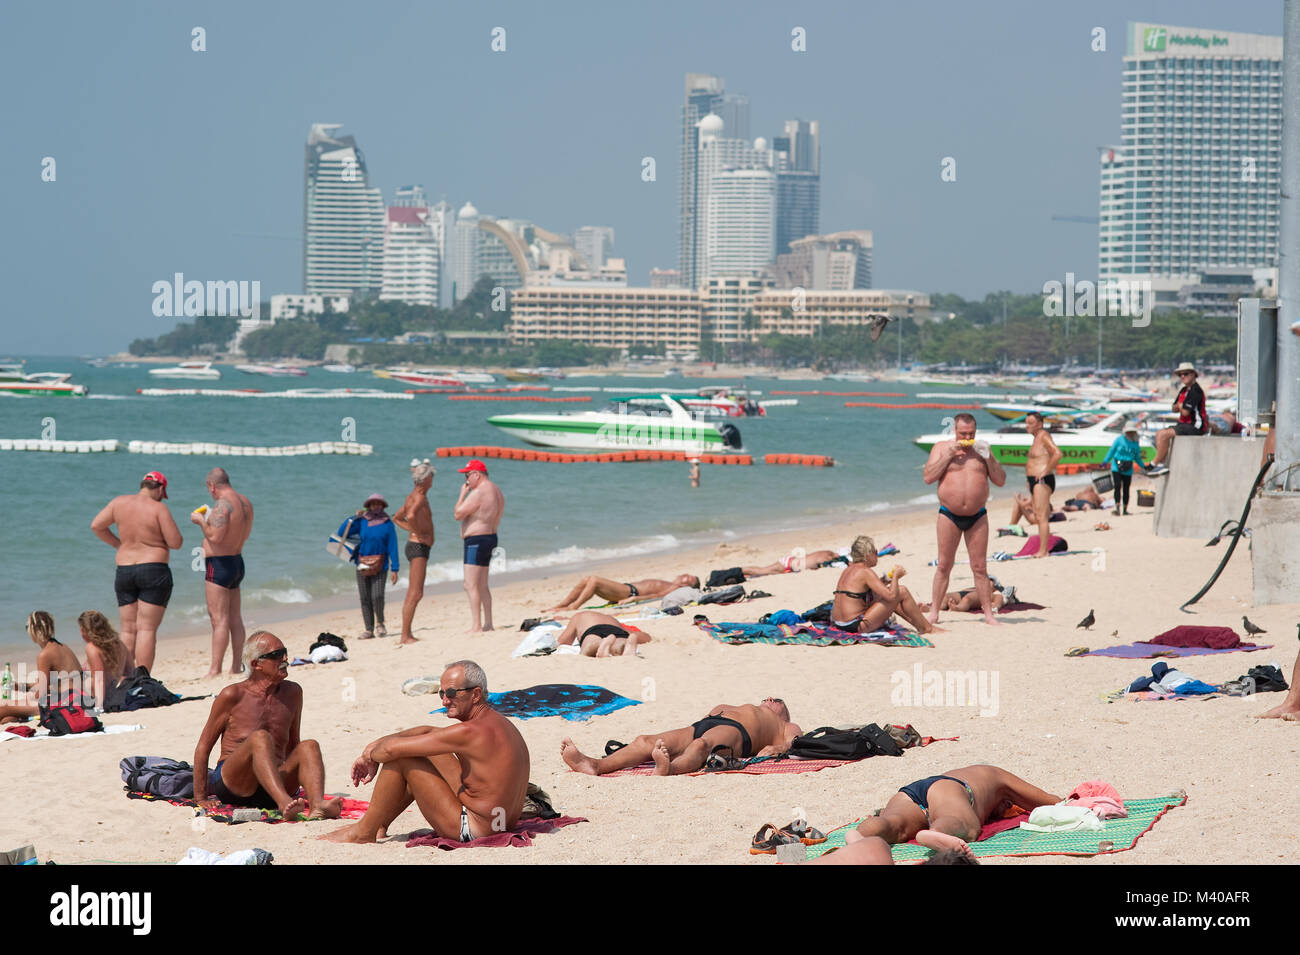 Sun Worshipers Pattaya Beach Thailand - Stock Image